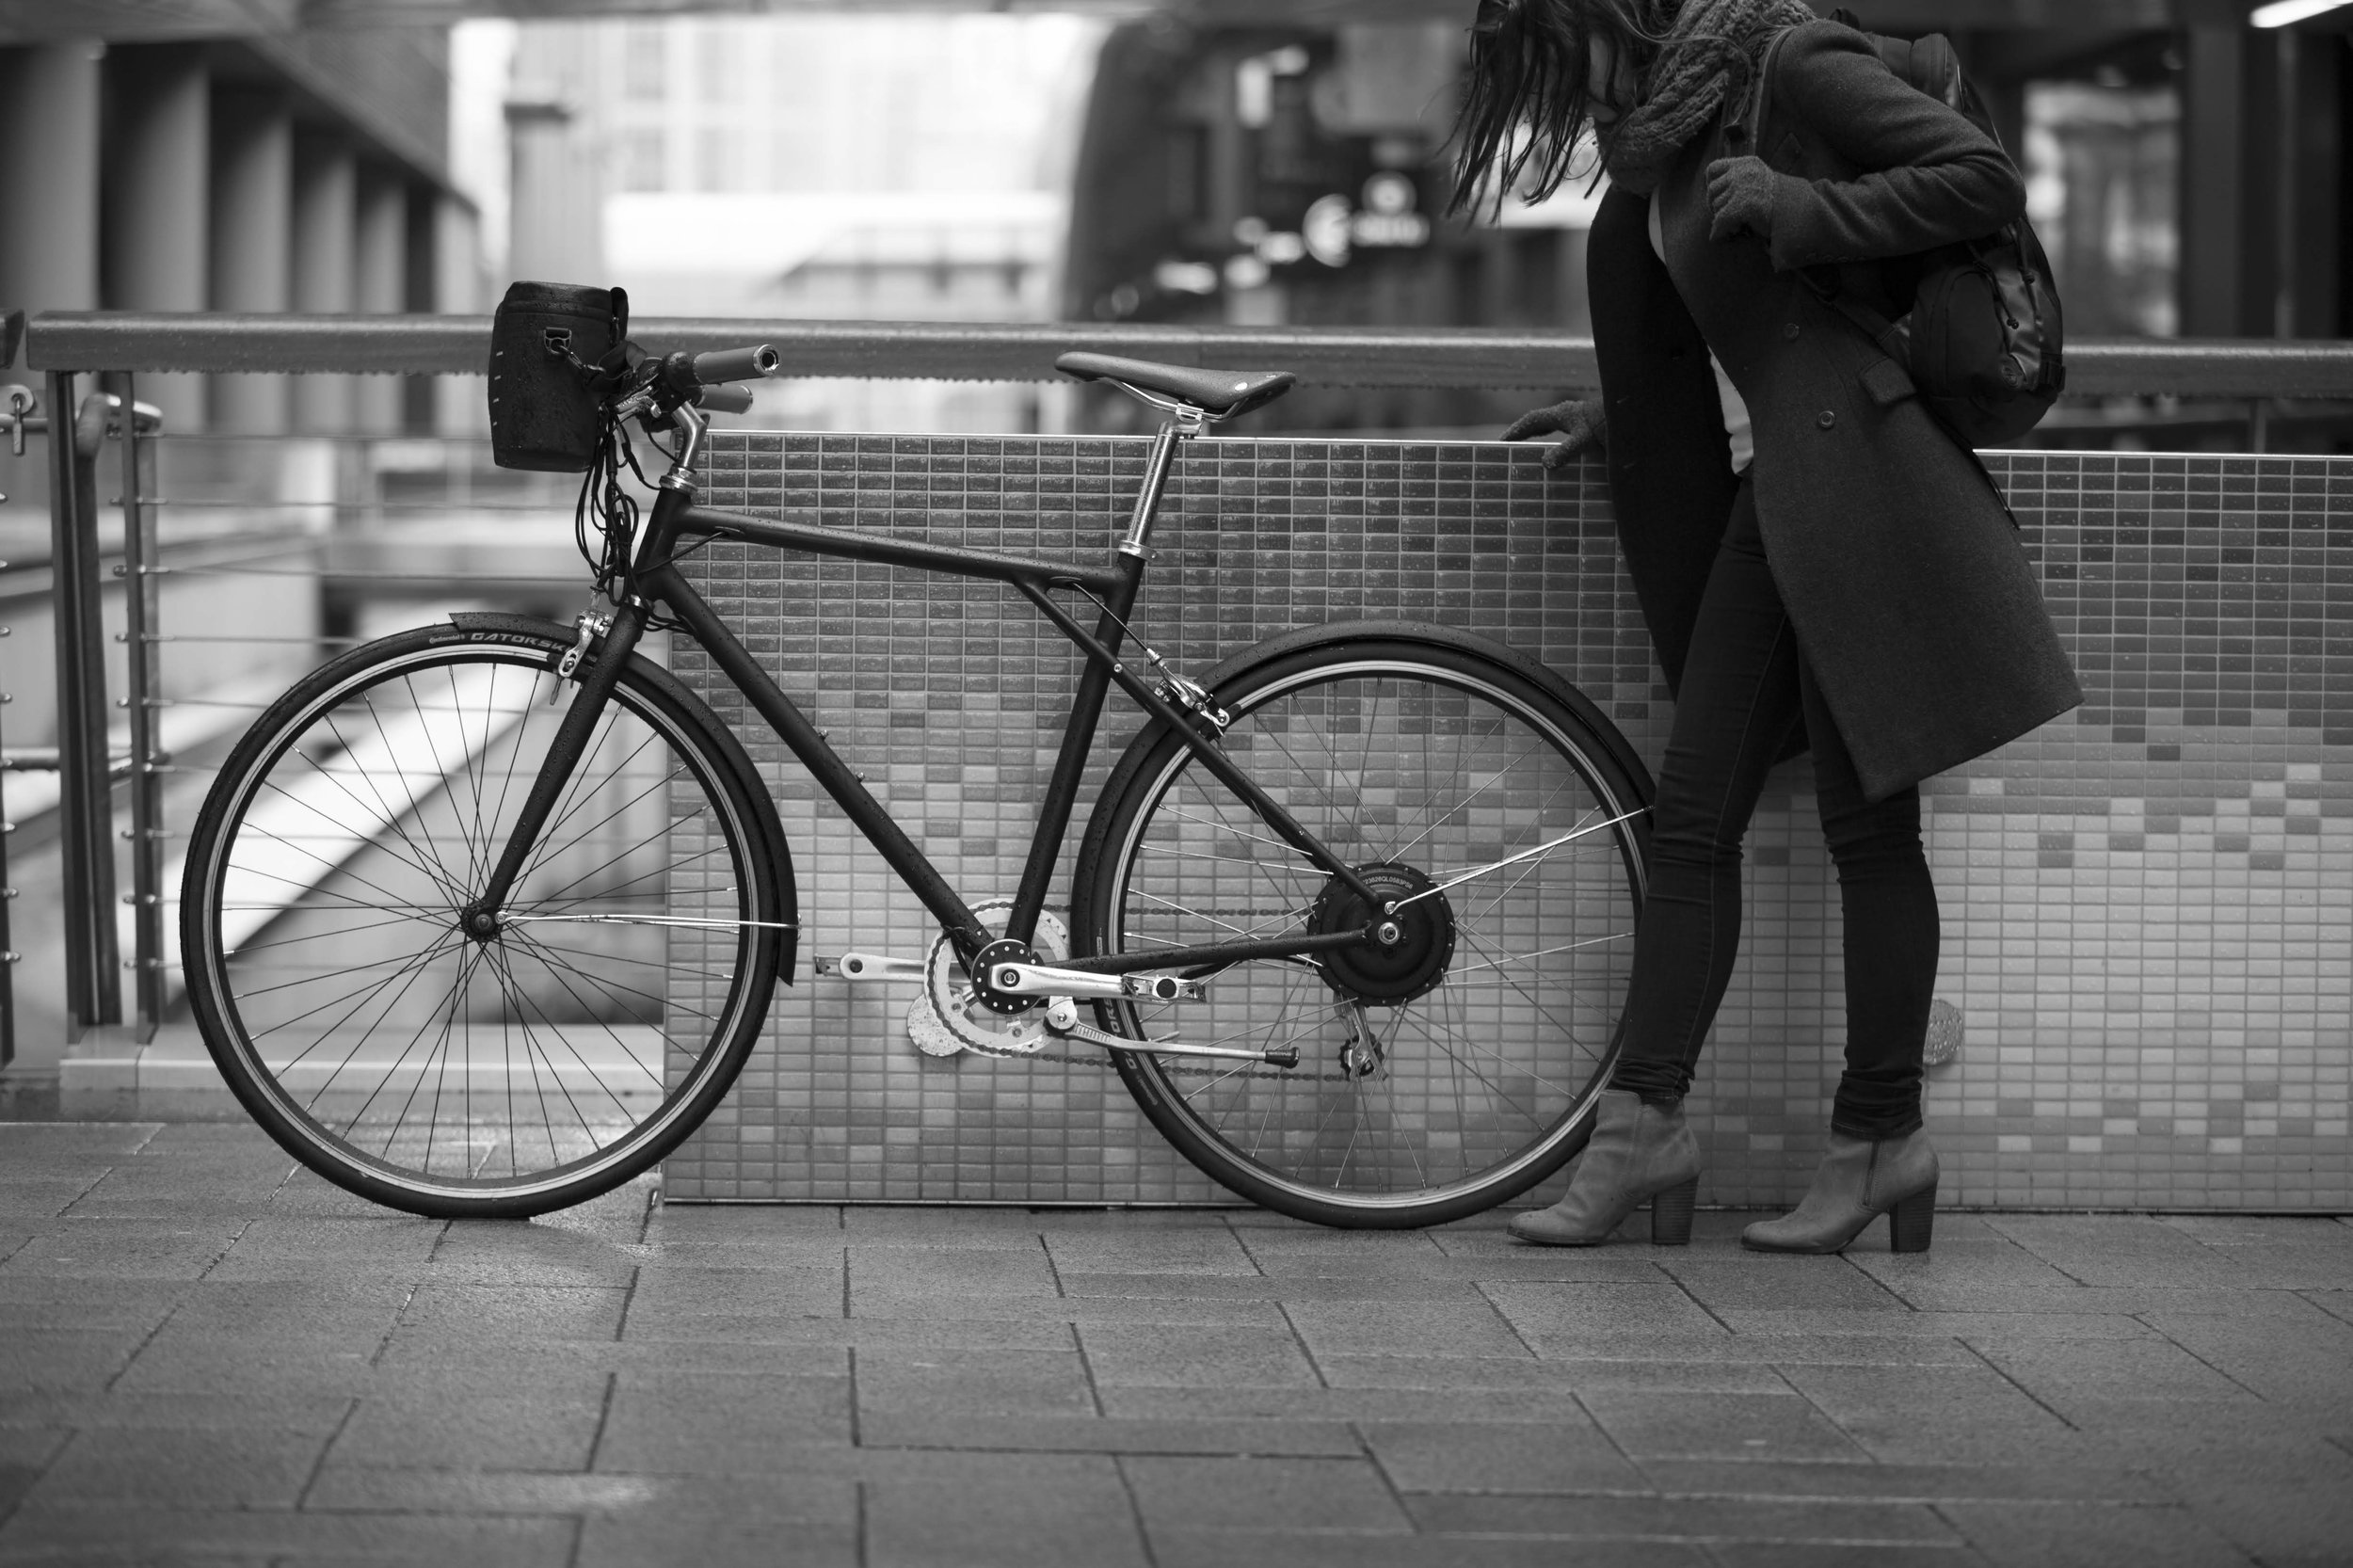 Swytch say their e-bike conversion kit is retrofitted in seconds